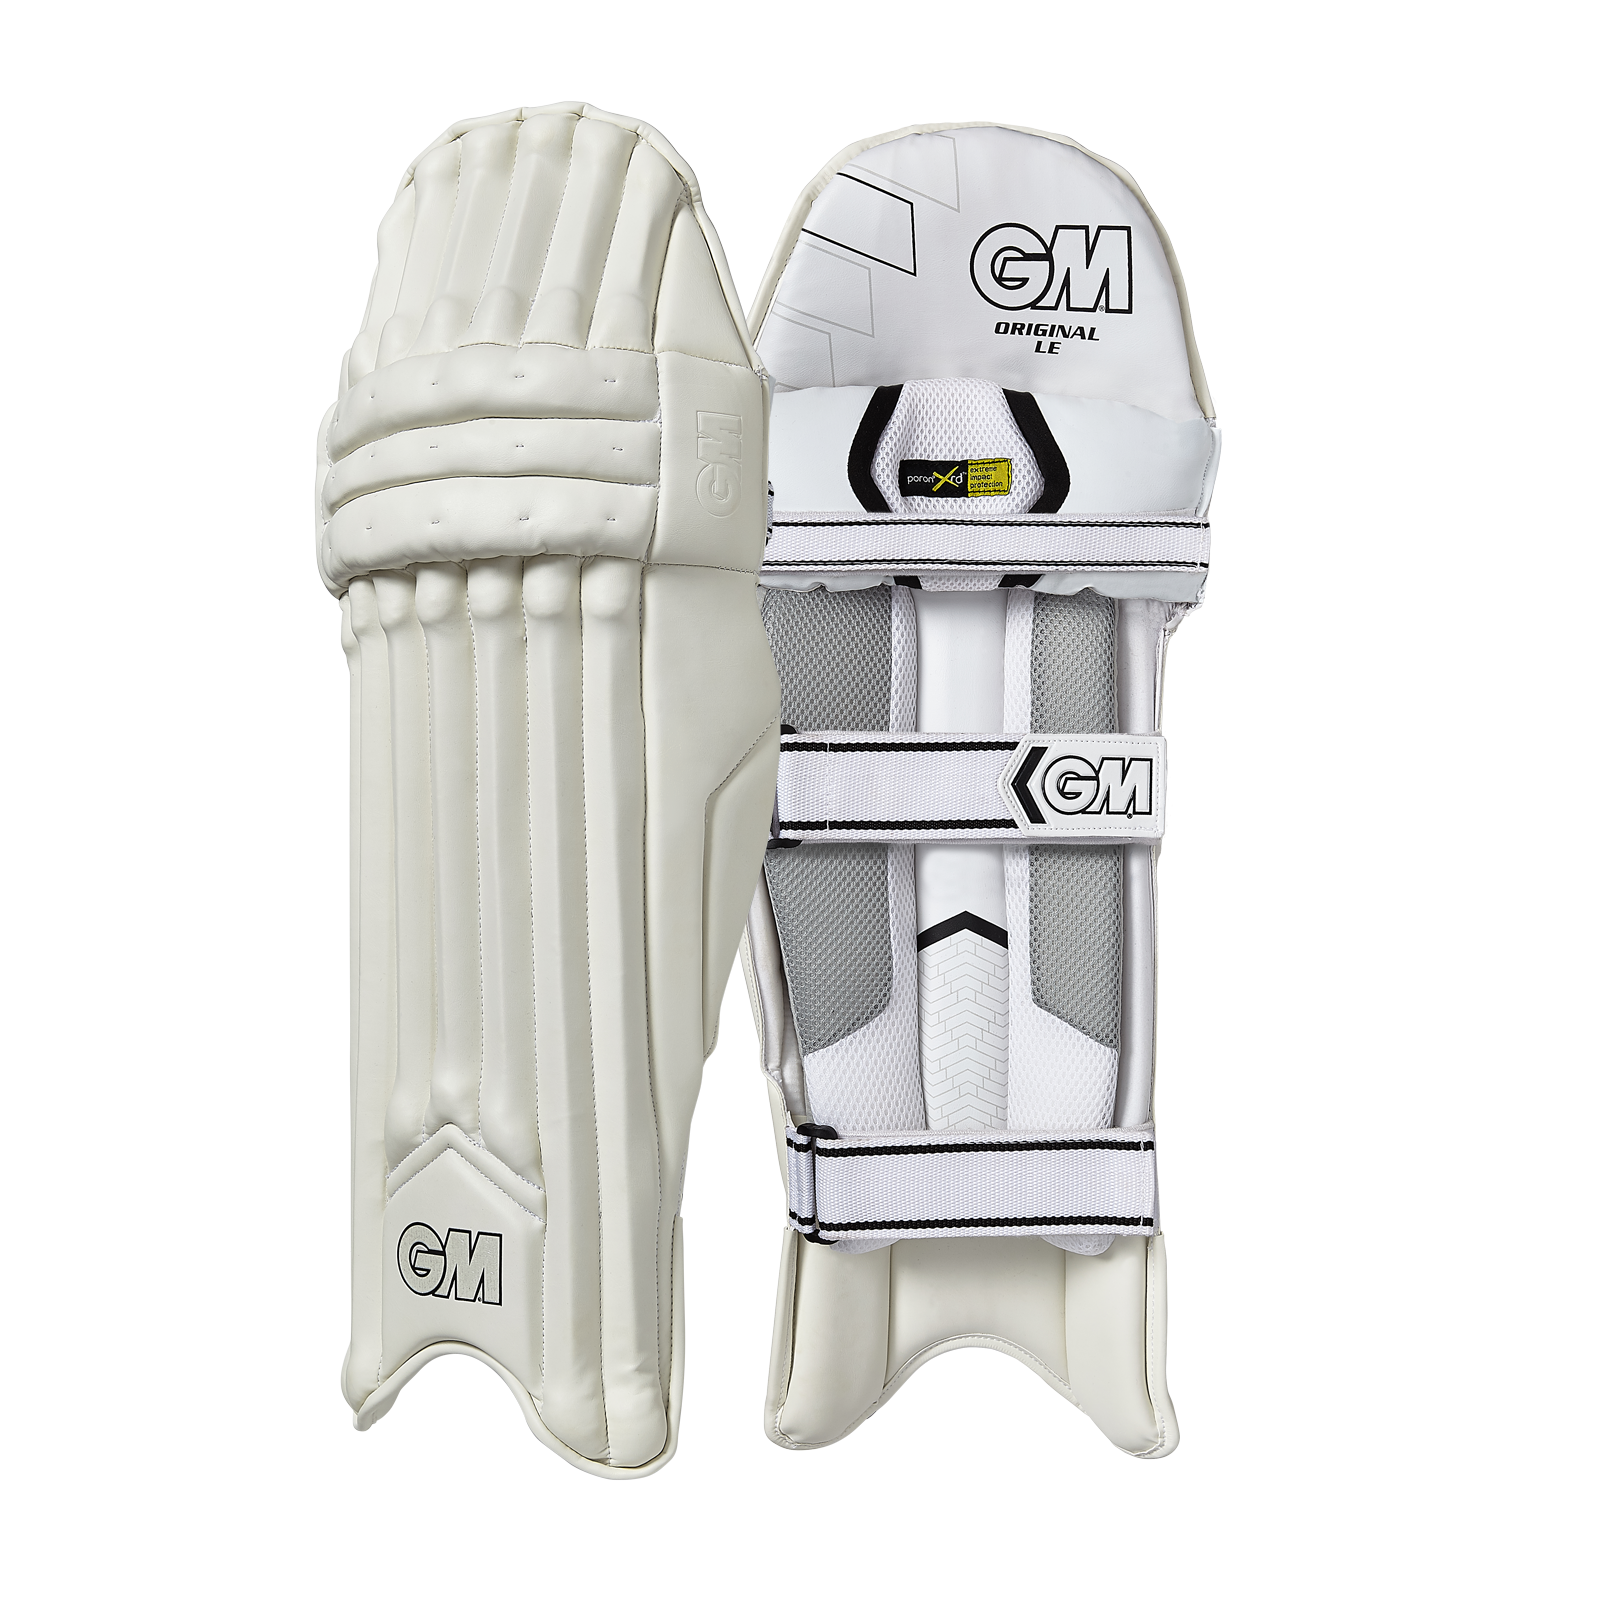 2021 Gunn and Moore Original Limited Edition Batting Pads